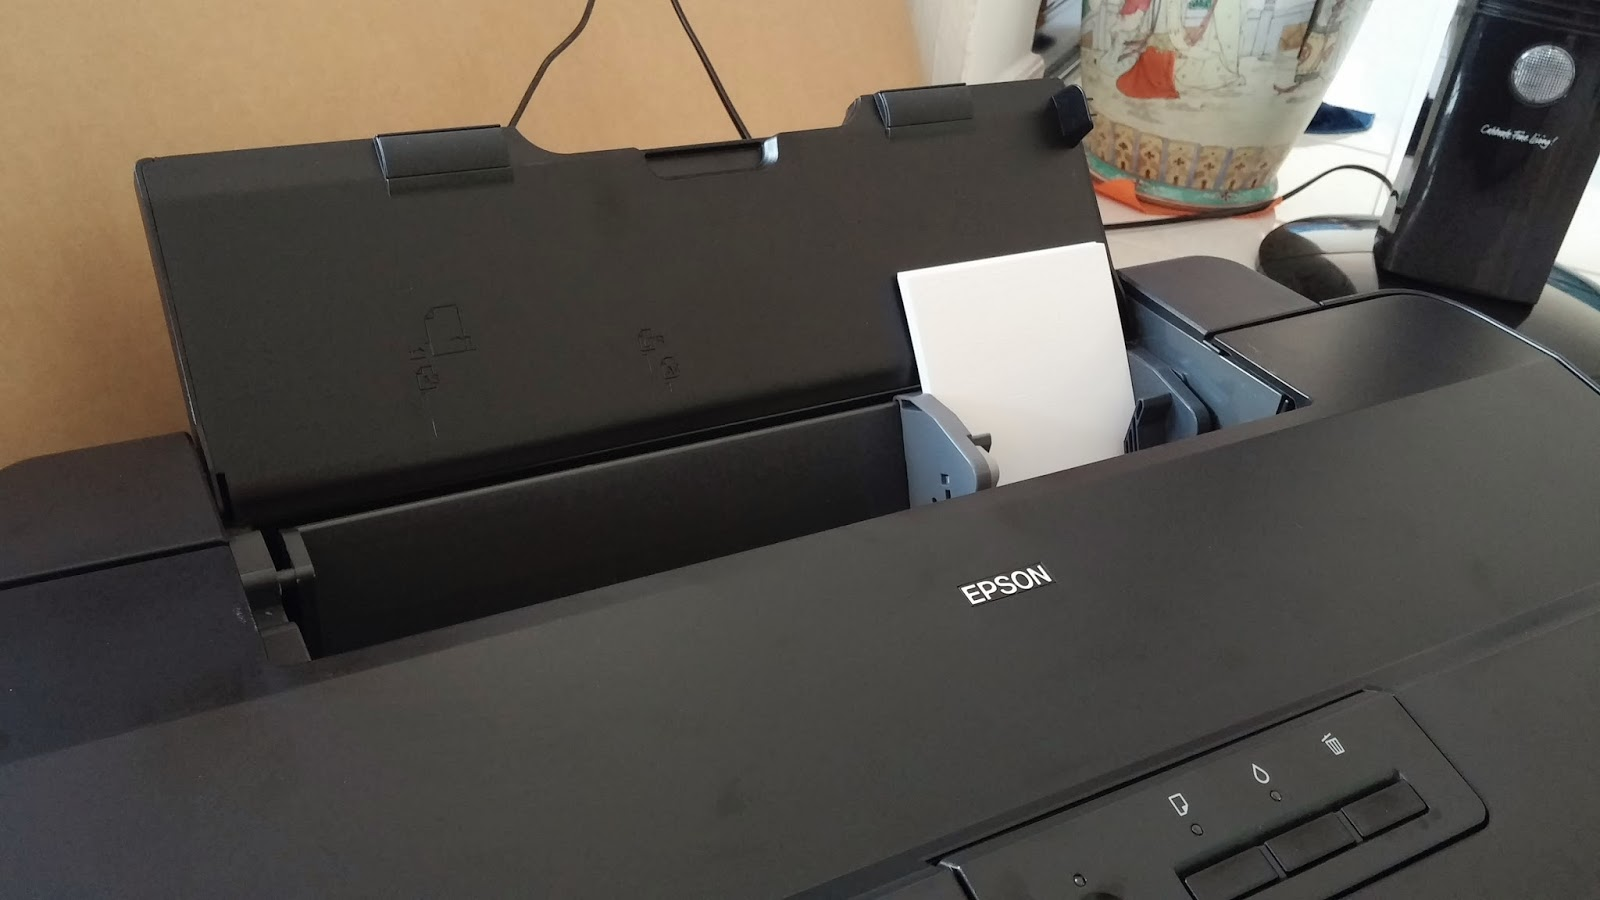 Review Of Epson L1800 Ink Tank System Color Printer The